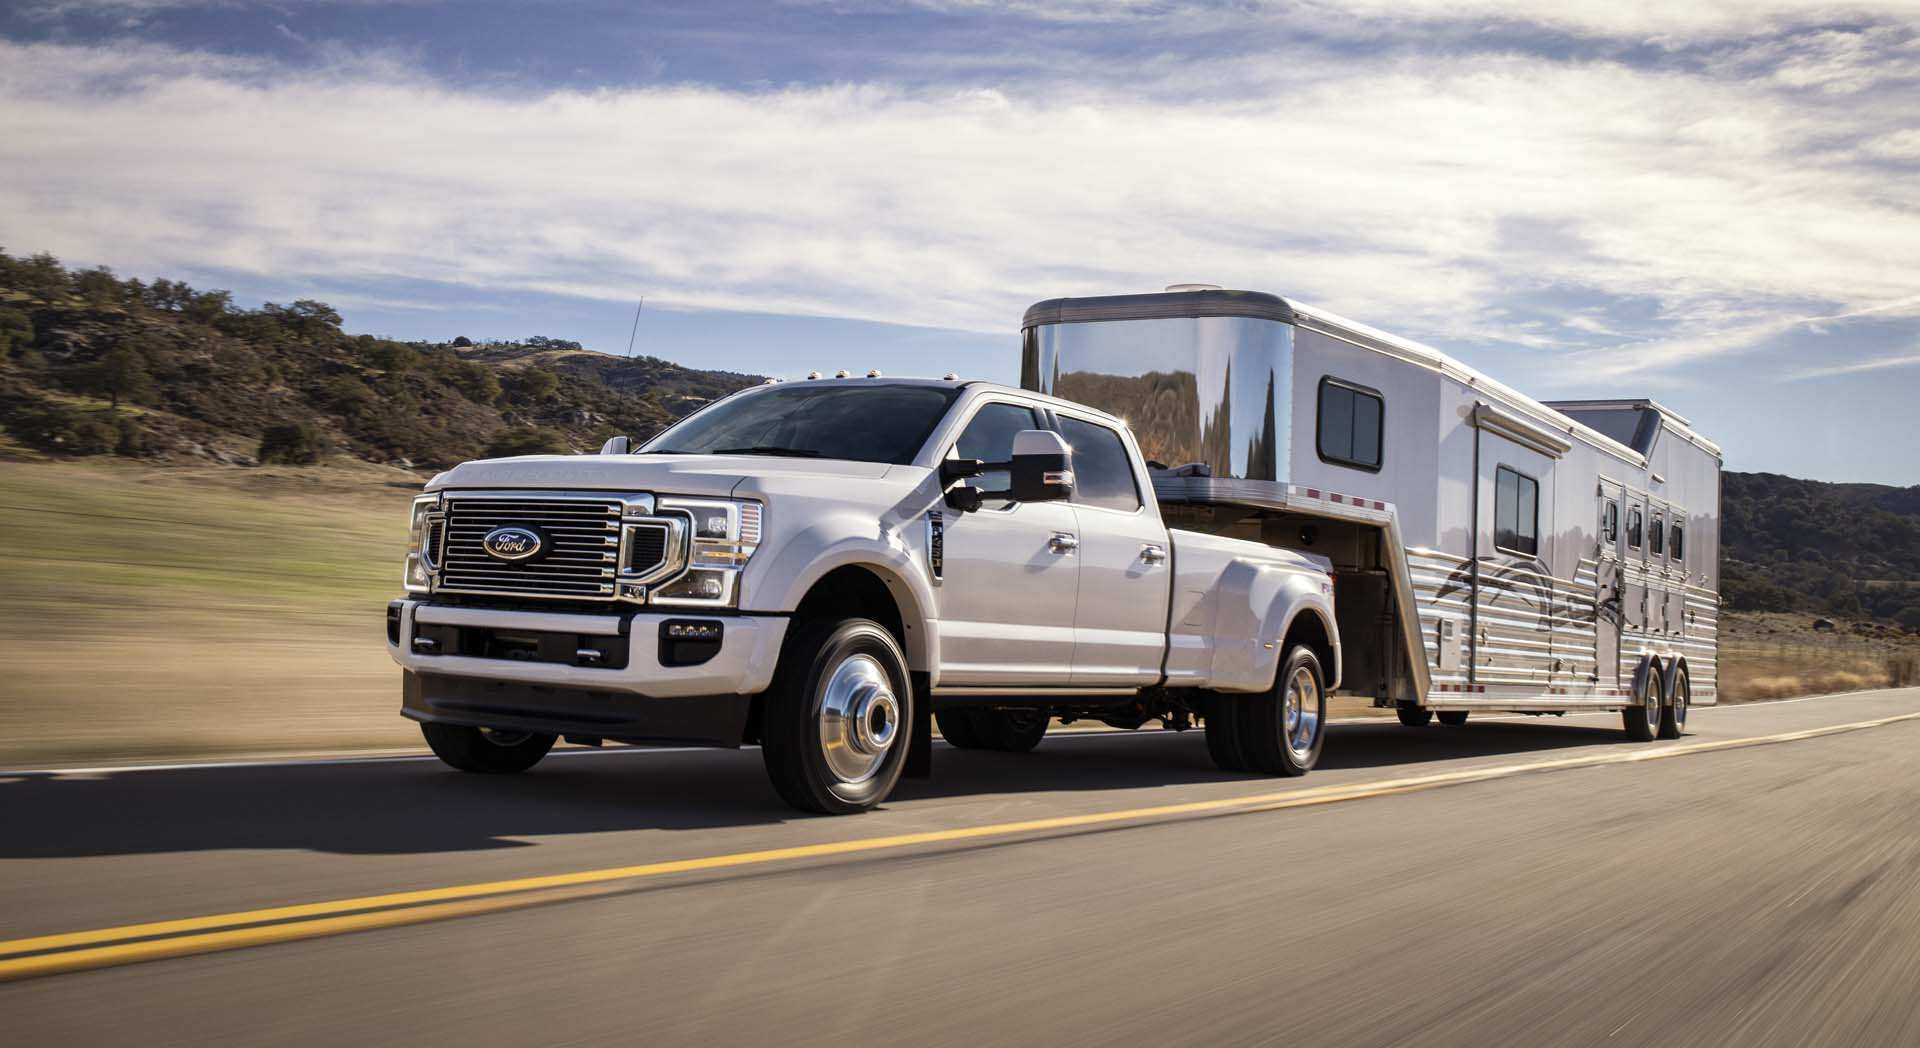 88 The 2020 Ford F 250 Wallpaper